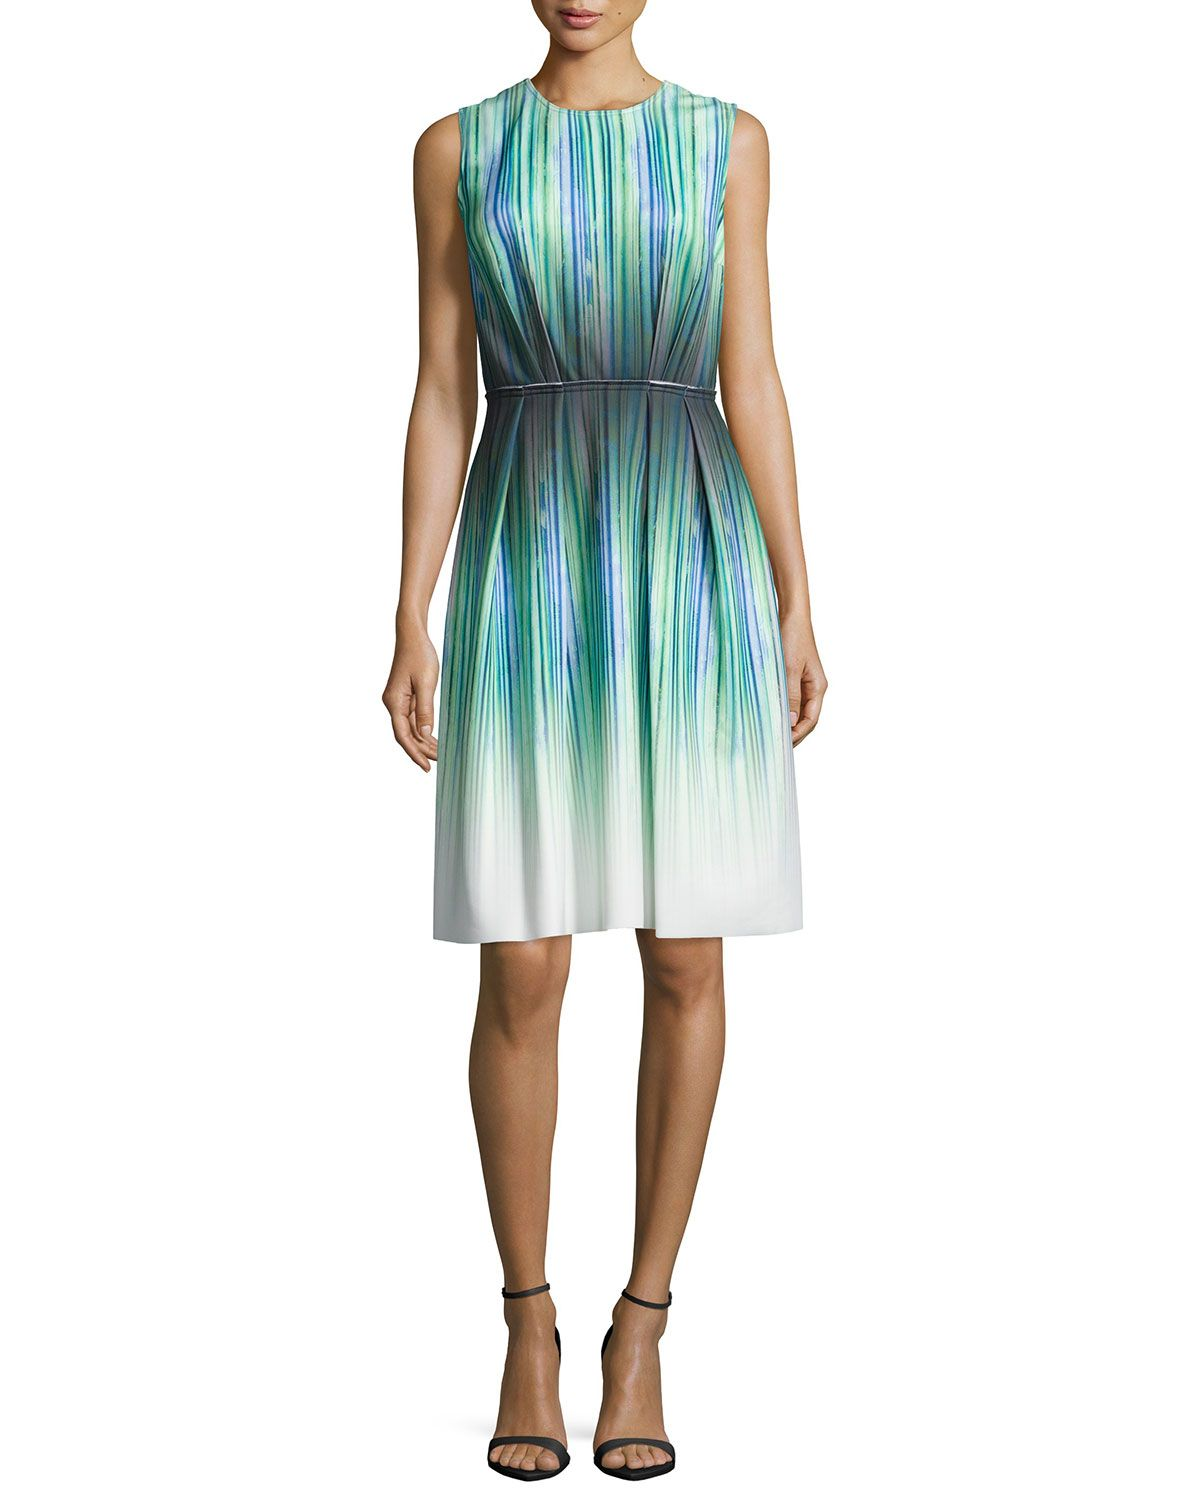 53662943096 Women s Sleeveless Striped-ombre Cocktail Dress